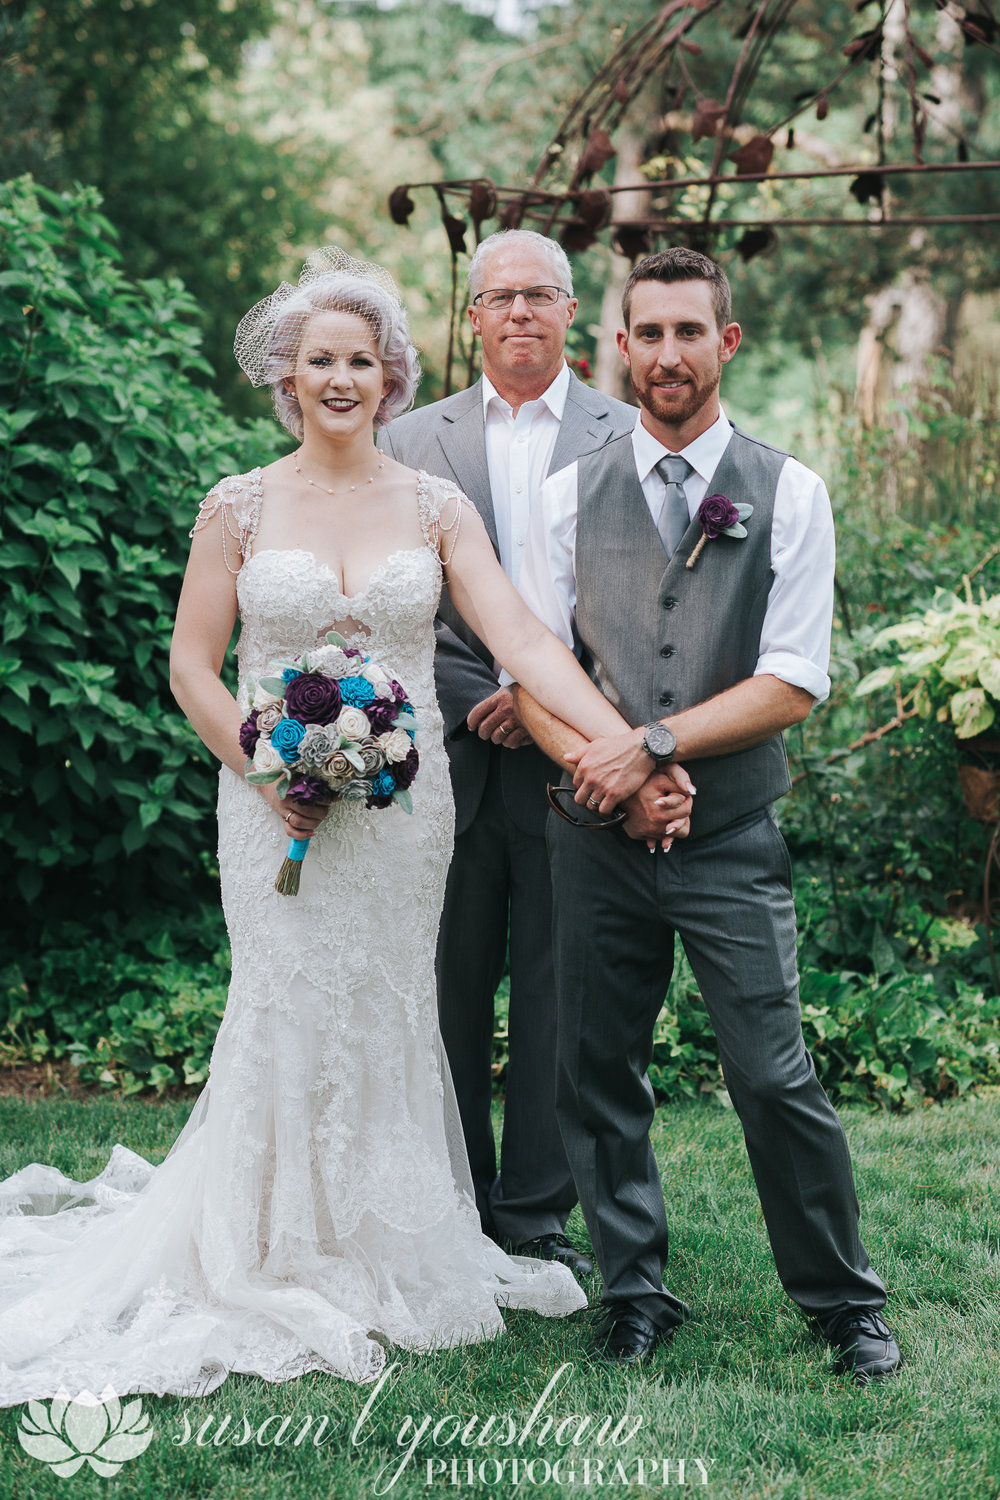 BLOG Kissy and Zane Diehl 07-14-2018 SLY Photography-133.jpg